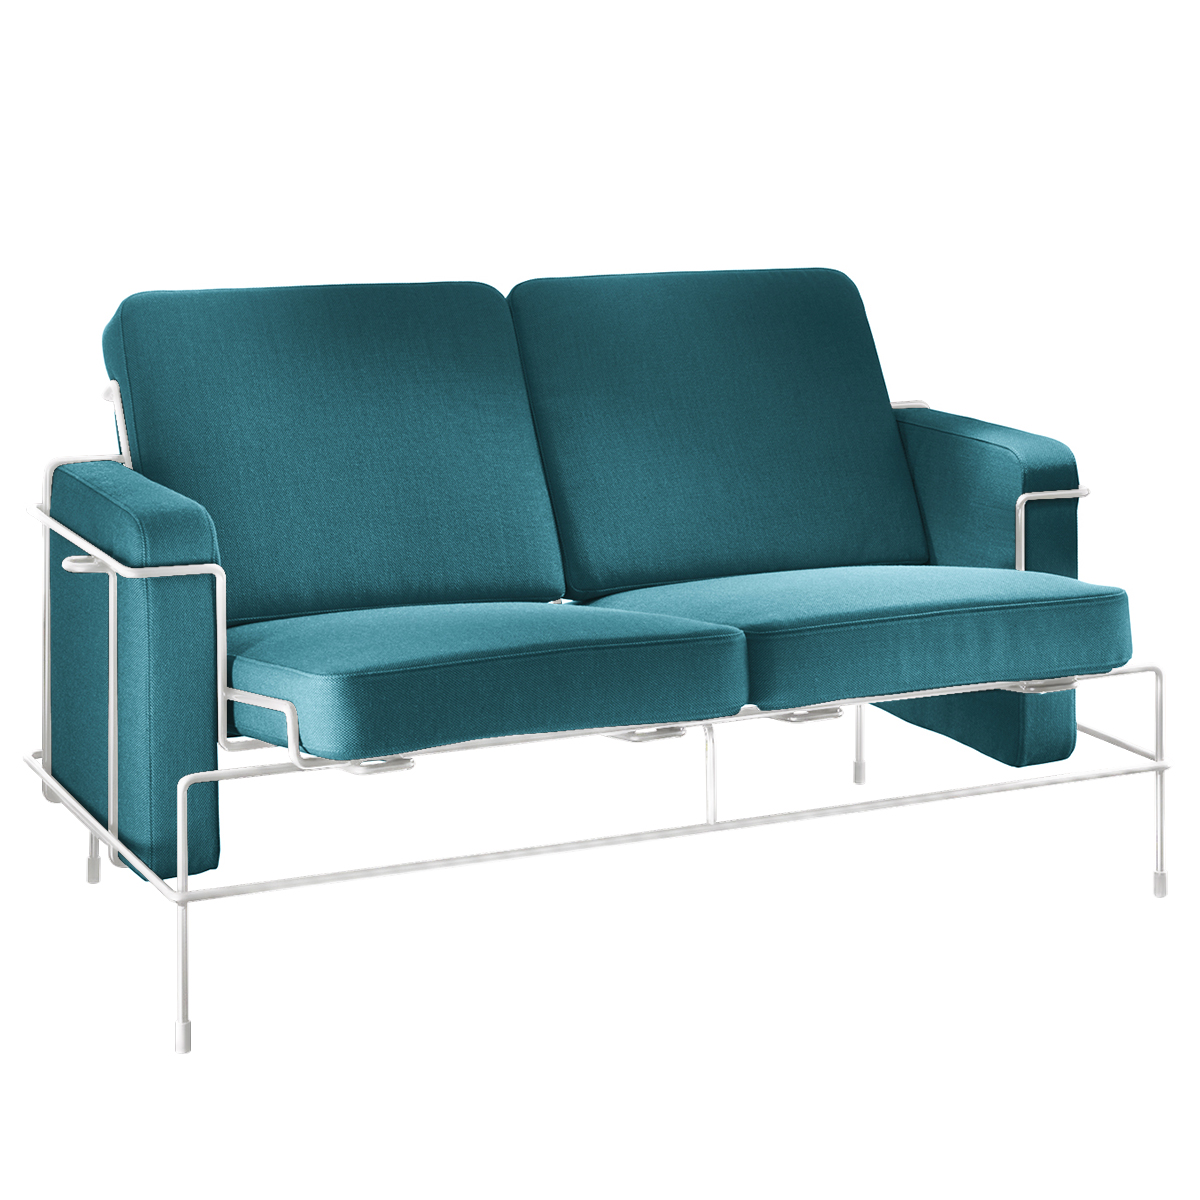 designwebstore traffic sofa blau blau 2 sitzer. Black Bedroom Furniture Sets. Home Design Ideas